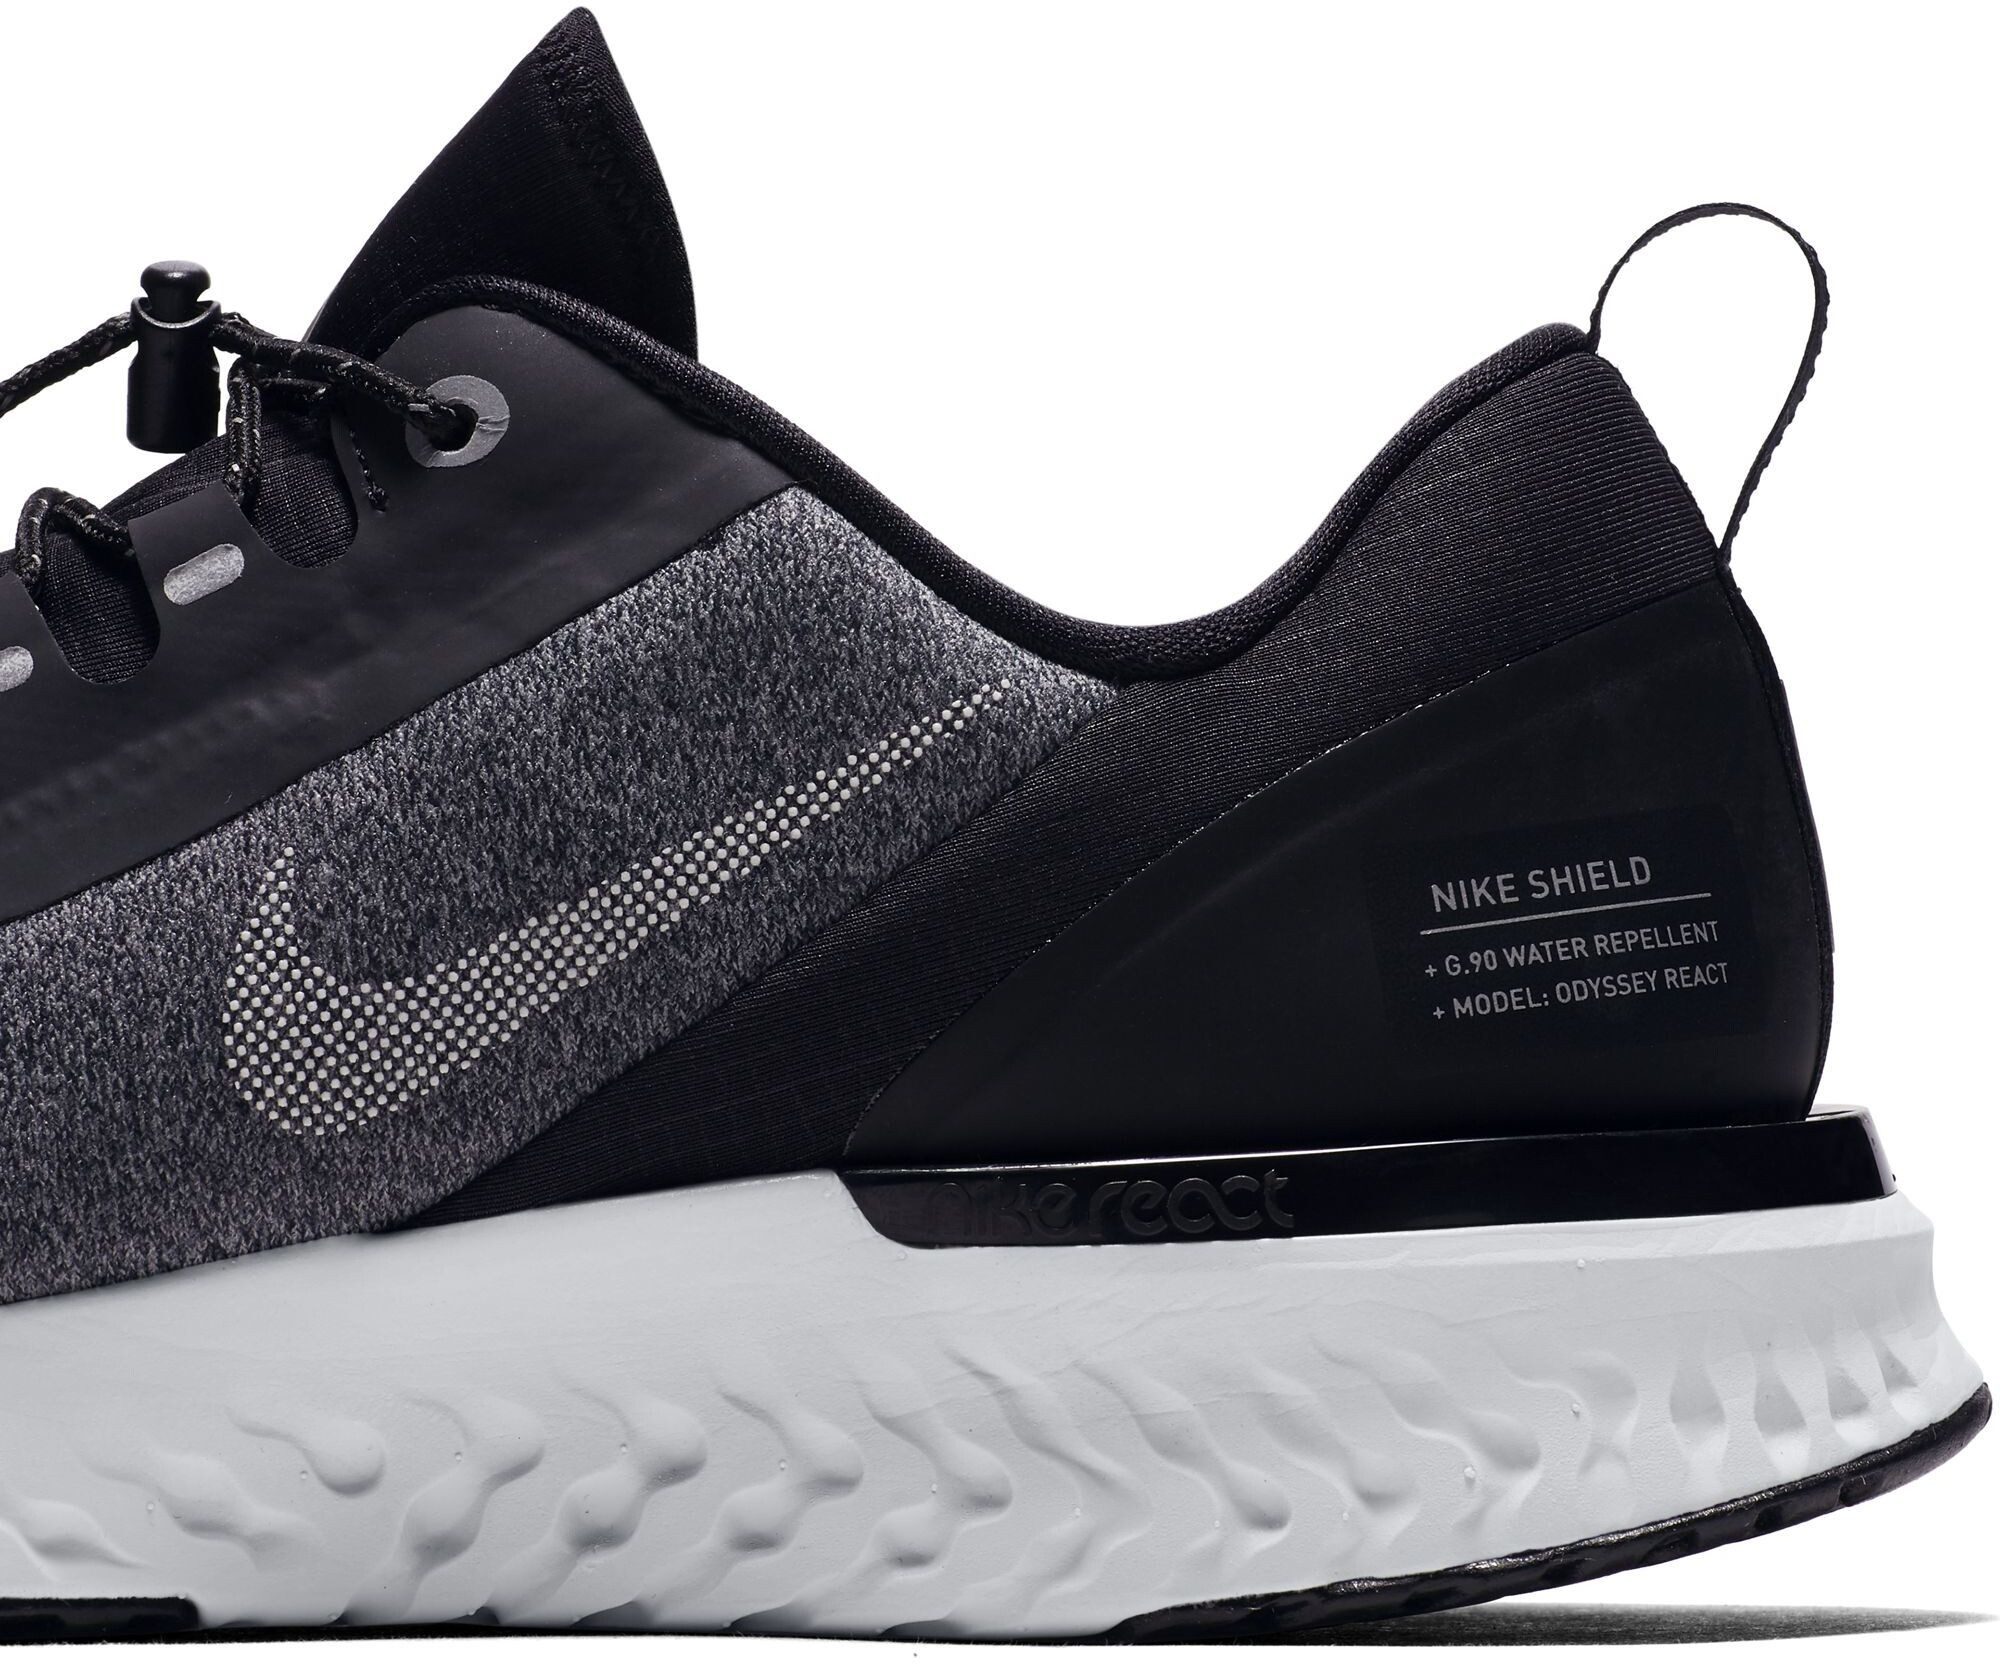 bfd6a7a3a443 Nike Odyssey React Shield Running Shoes Men black at Bikester.co.uk